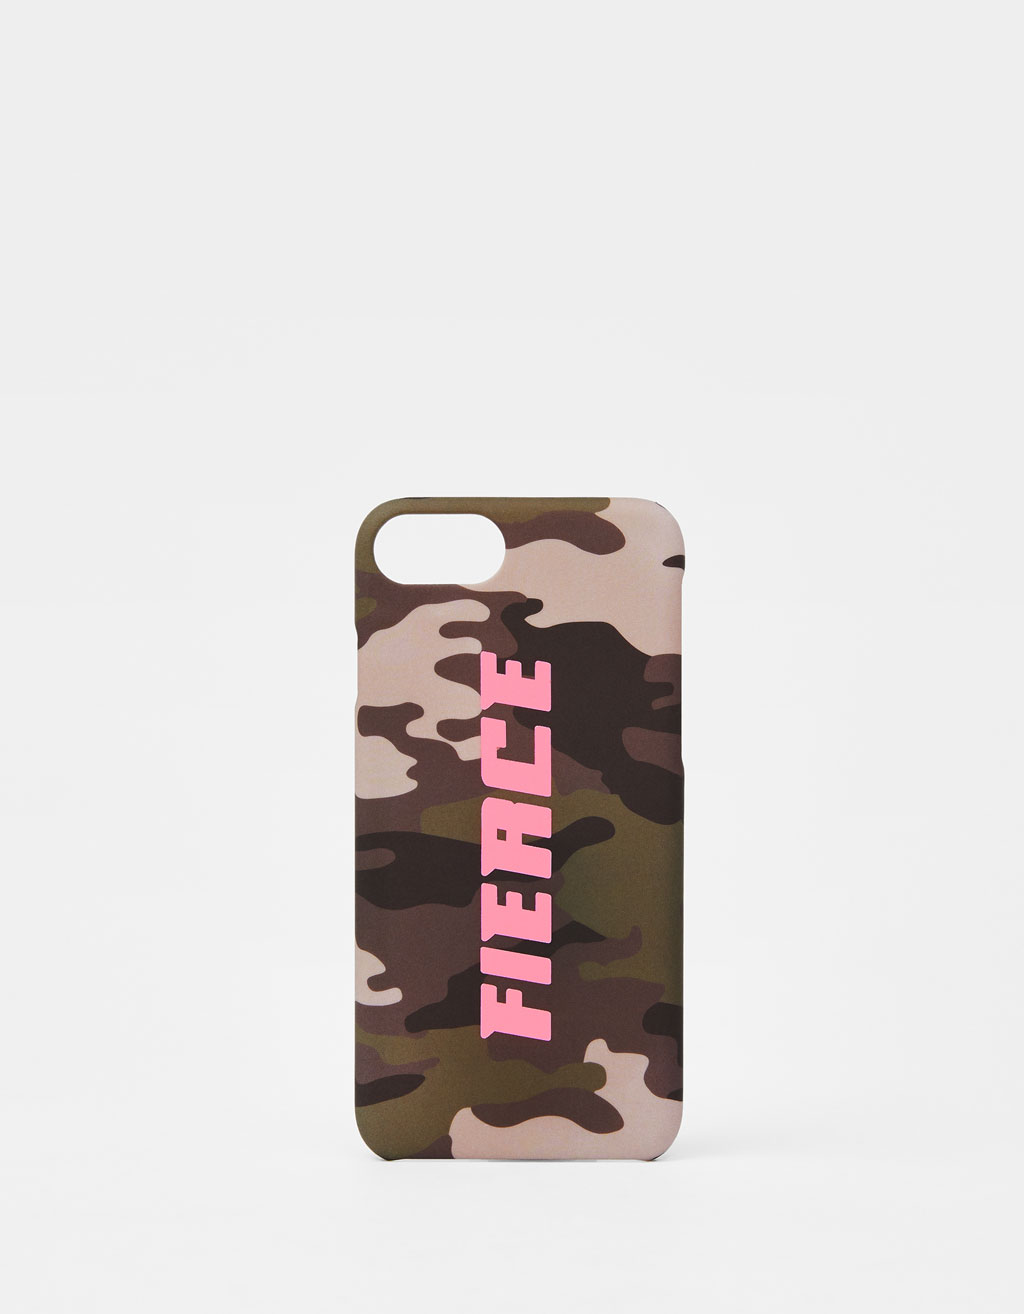 Camouflage iPhone 6 / 6S / 7 / 8 case